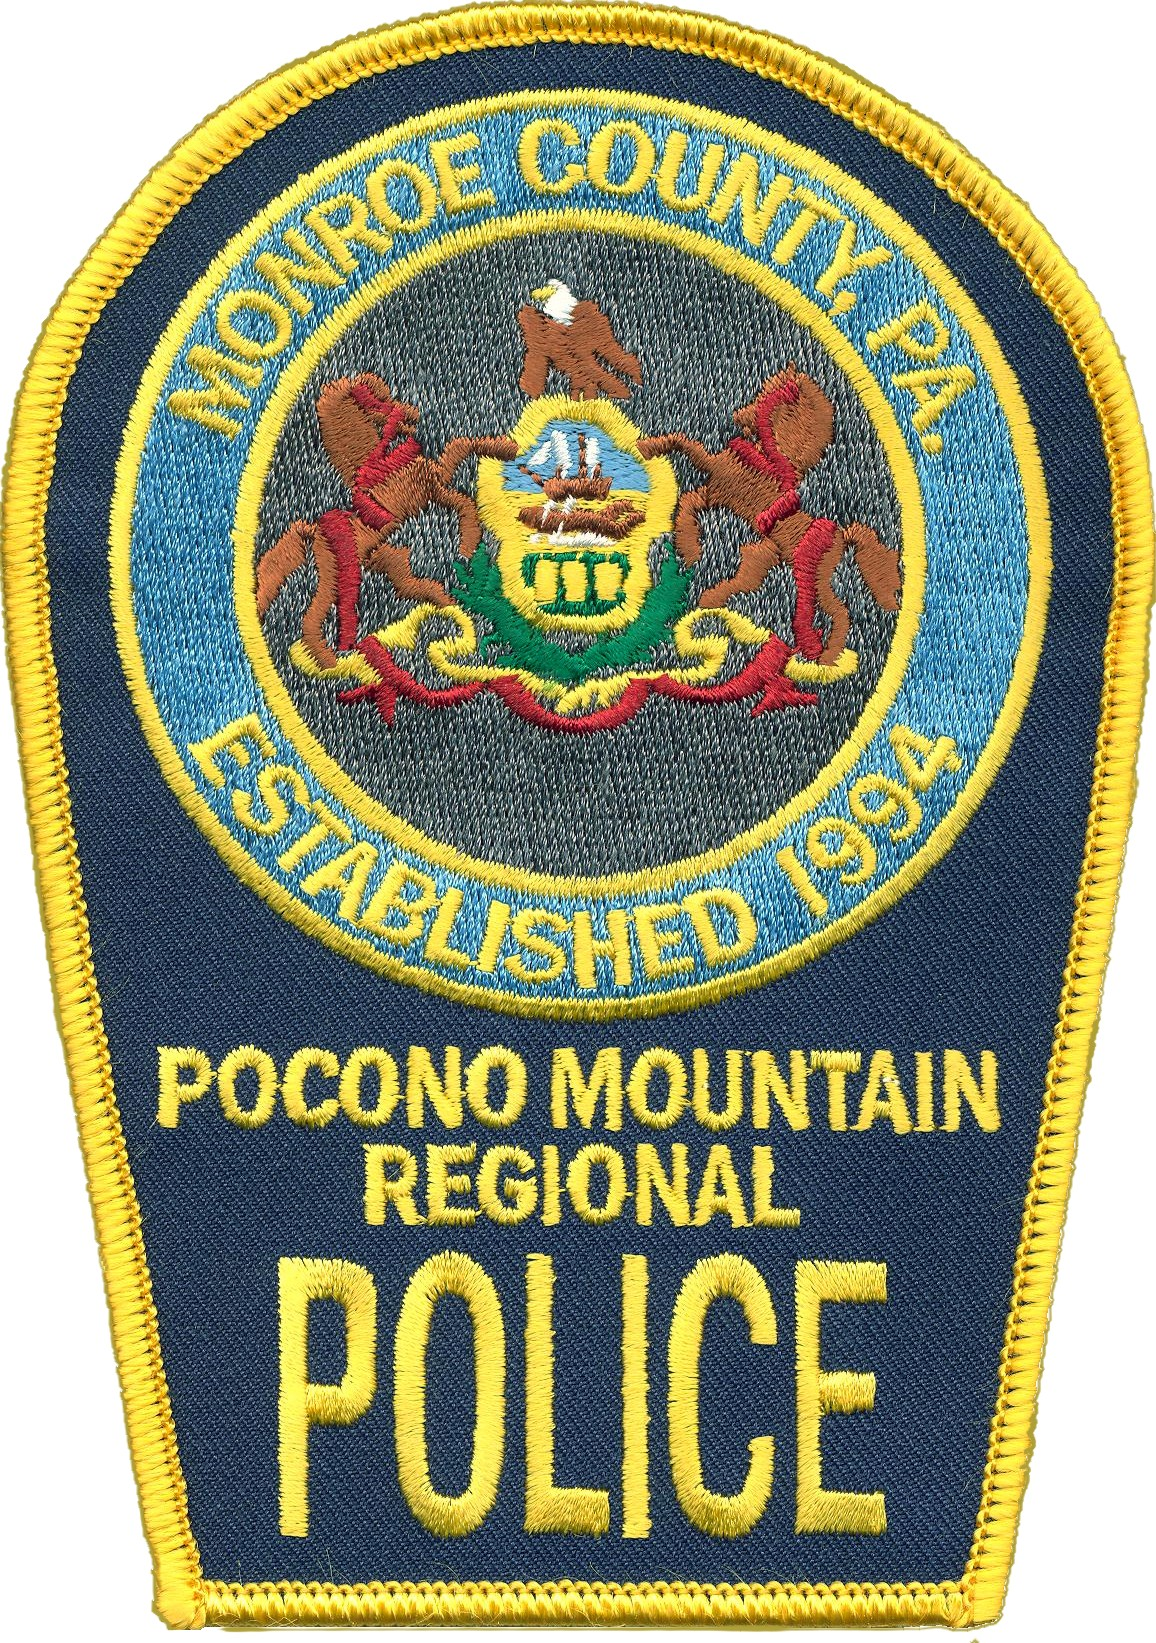 pocono mountain regional pd